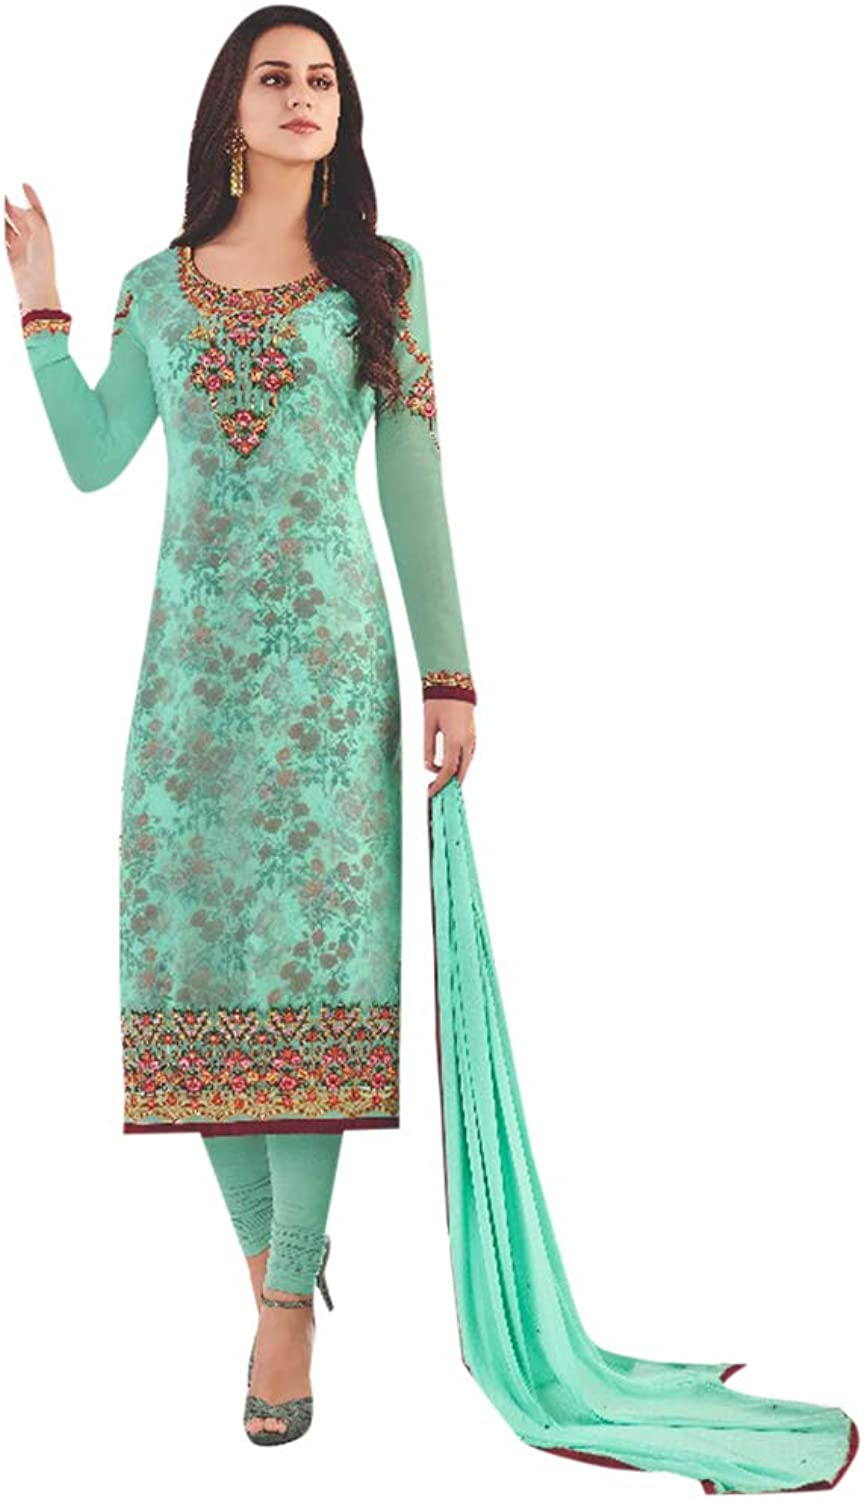 Indian Designer Salwar Kameez suit With Dupatta Ethnic Pajami Style Party Formal Wear 7176